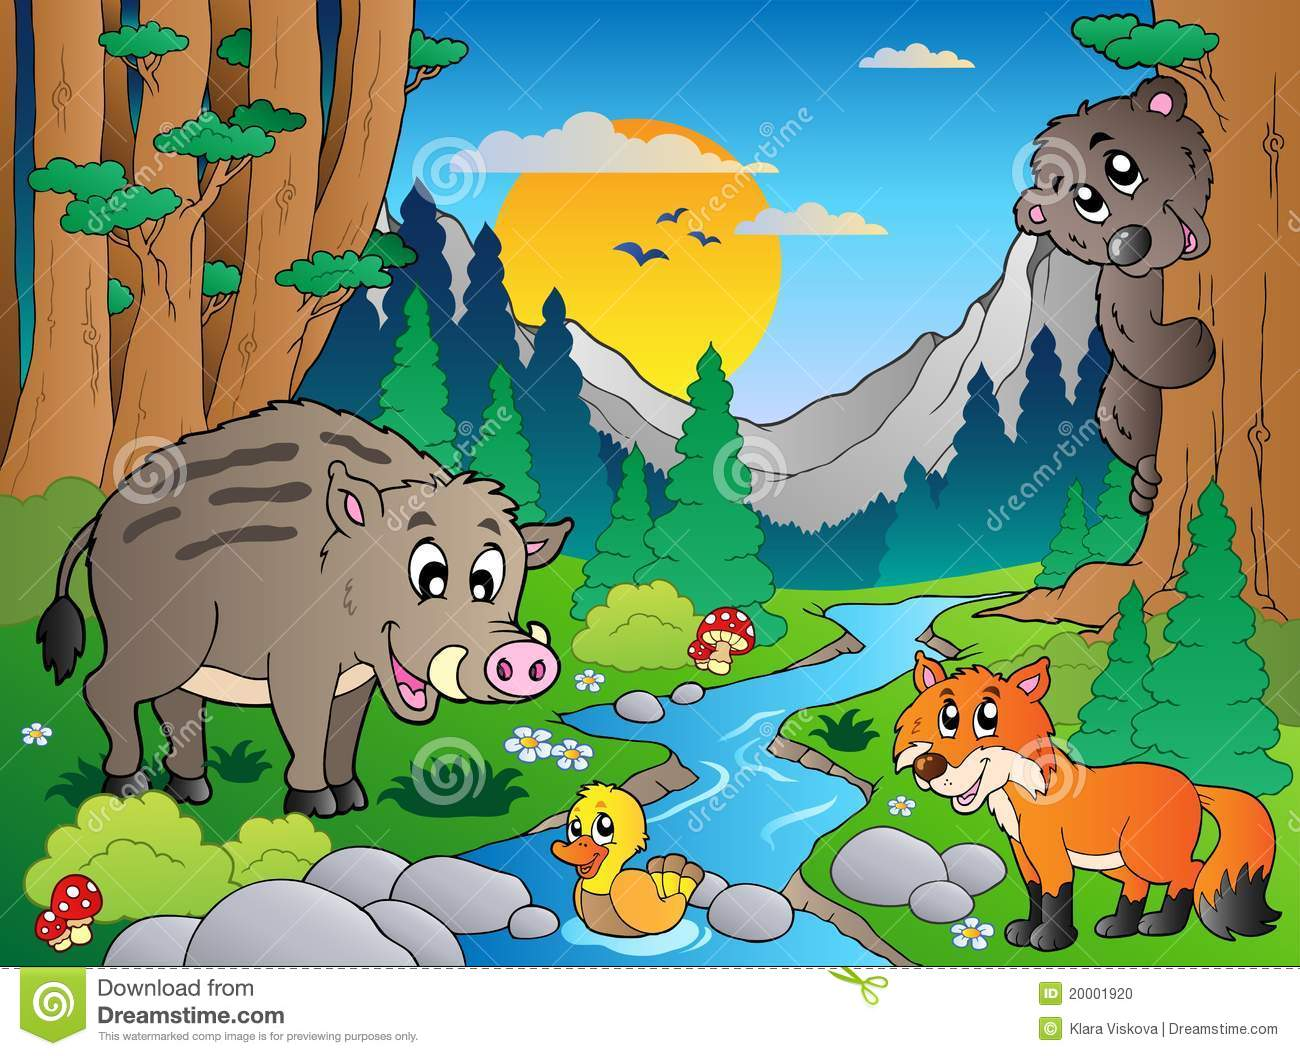 Cute River Woodland Animals Clipart Instant Download File | Etsy | Clip art,  Animal clipart, Digital graphics